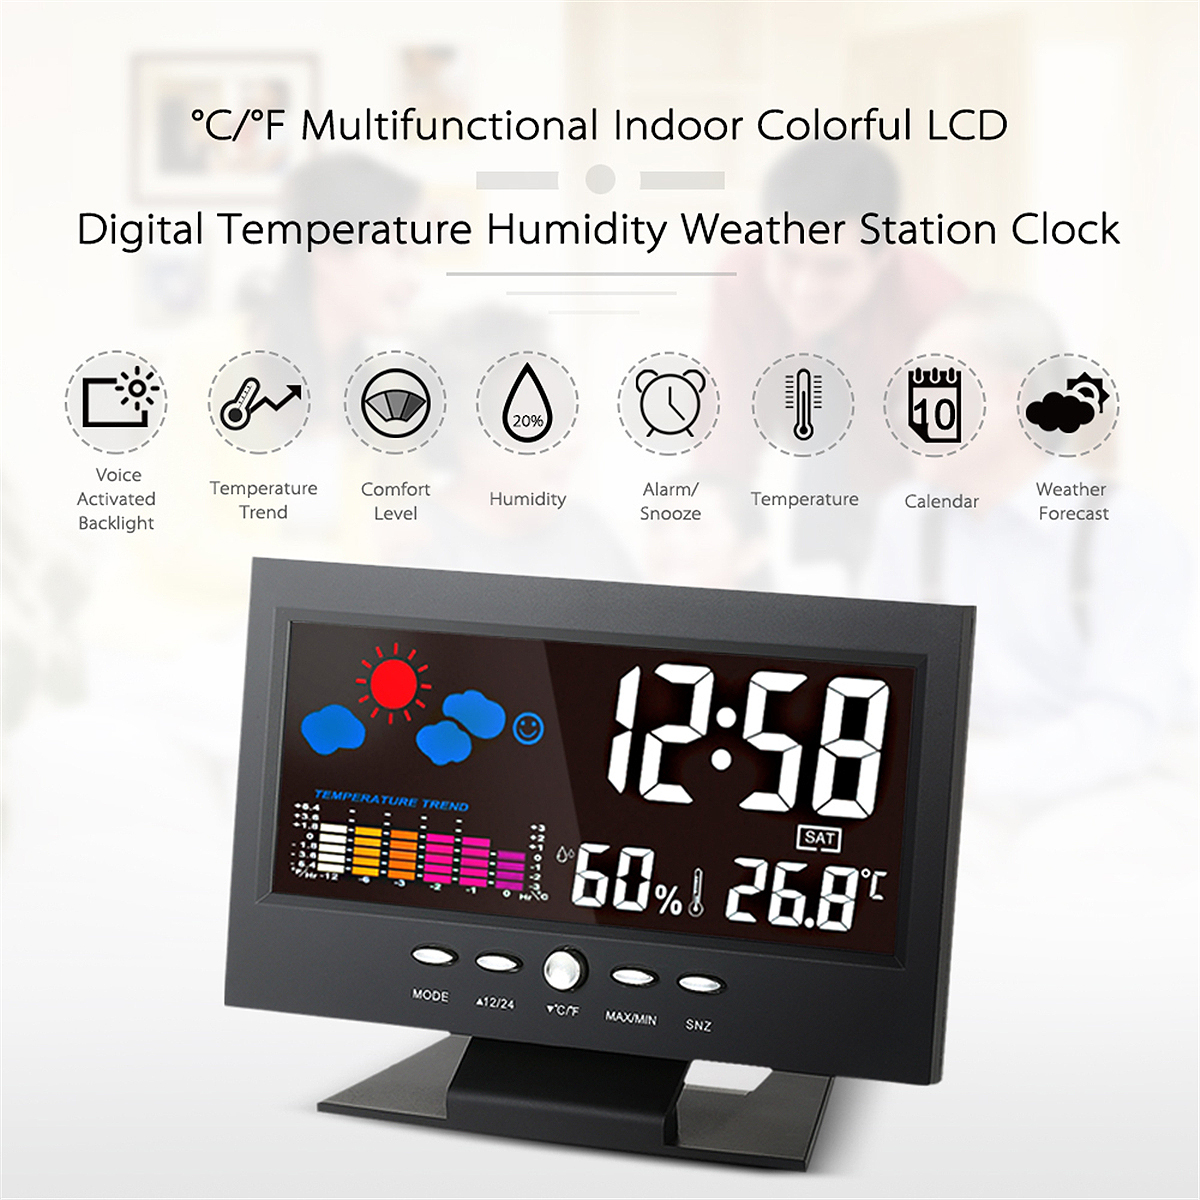 цена на 1Pcs Digital Thermometer Hygrometer Weather Station Alarm Clock Colorful LCD Backlight Calendar for Home for Car